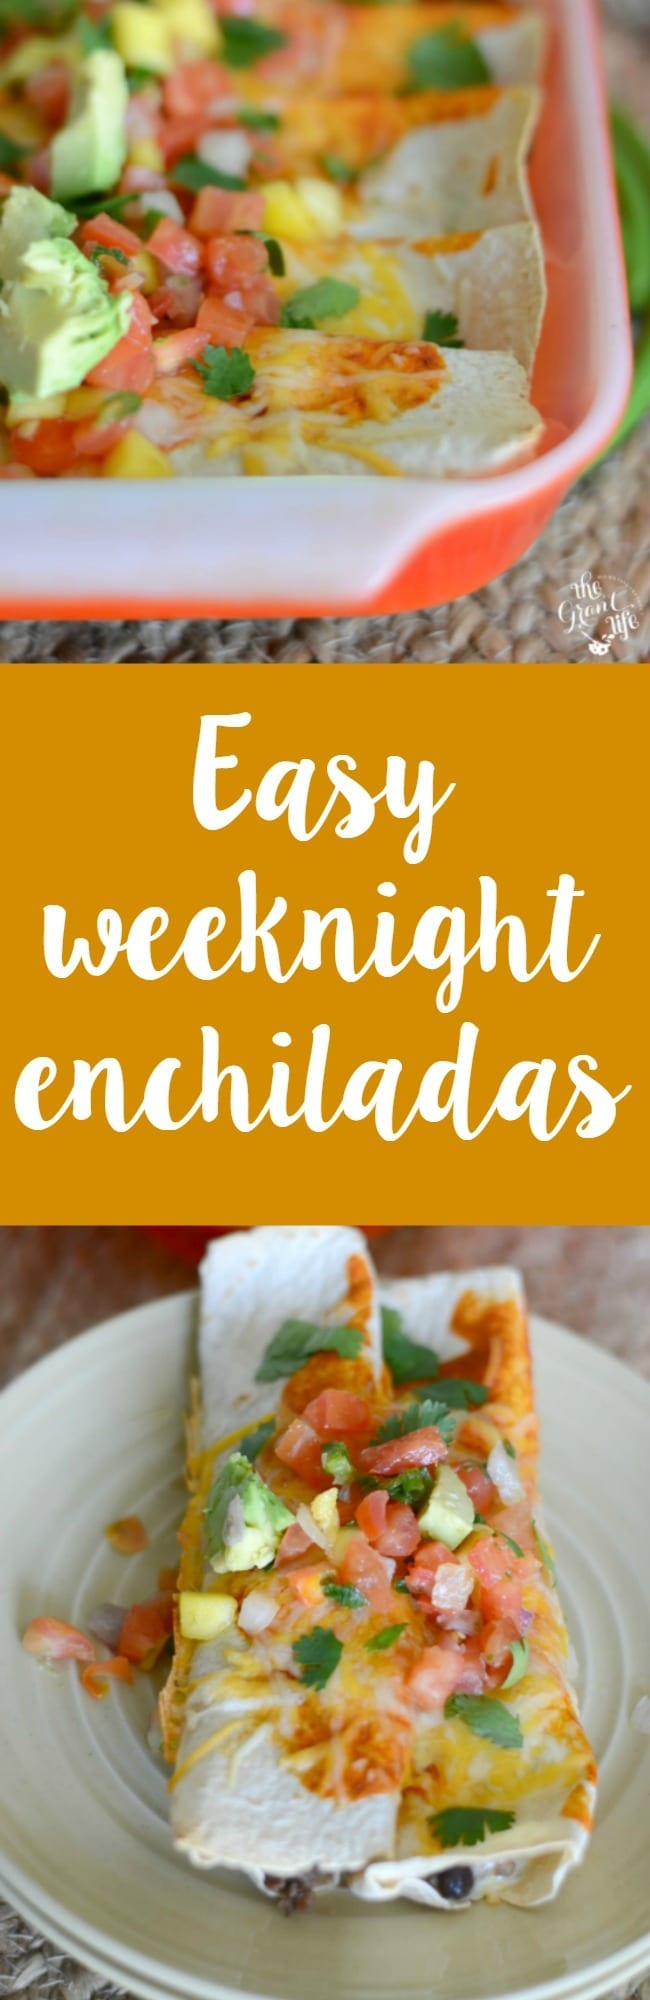 Easy weeknight enchilada recipe! Make these yummy enchiladas super quick